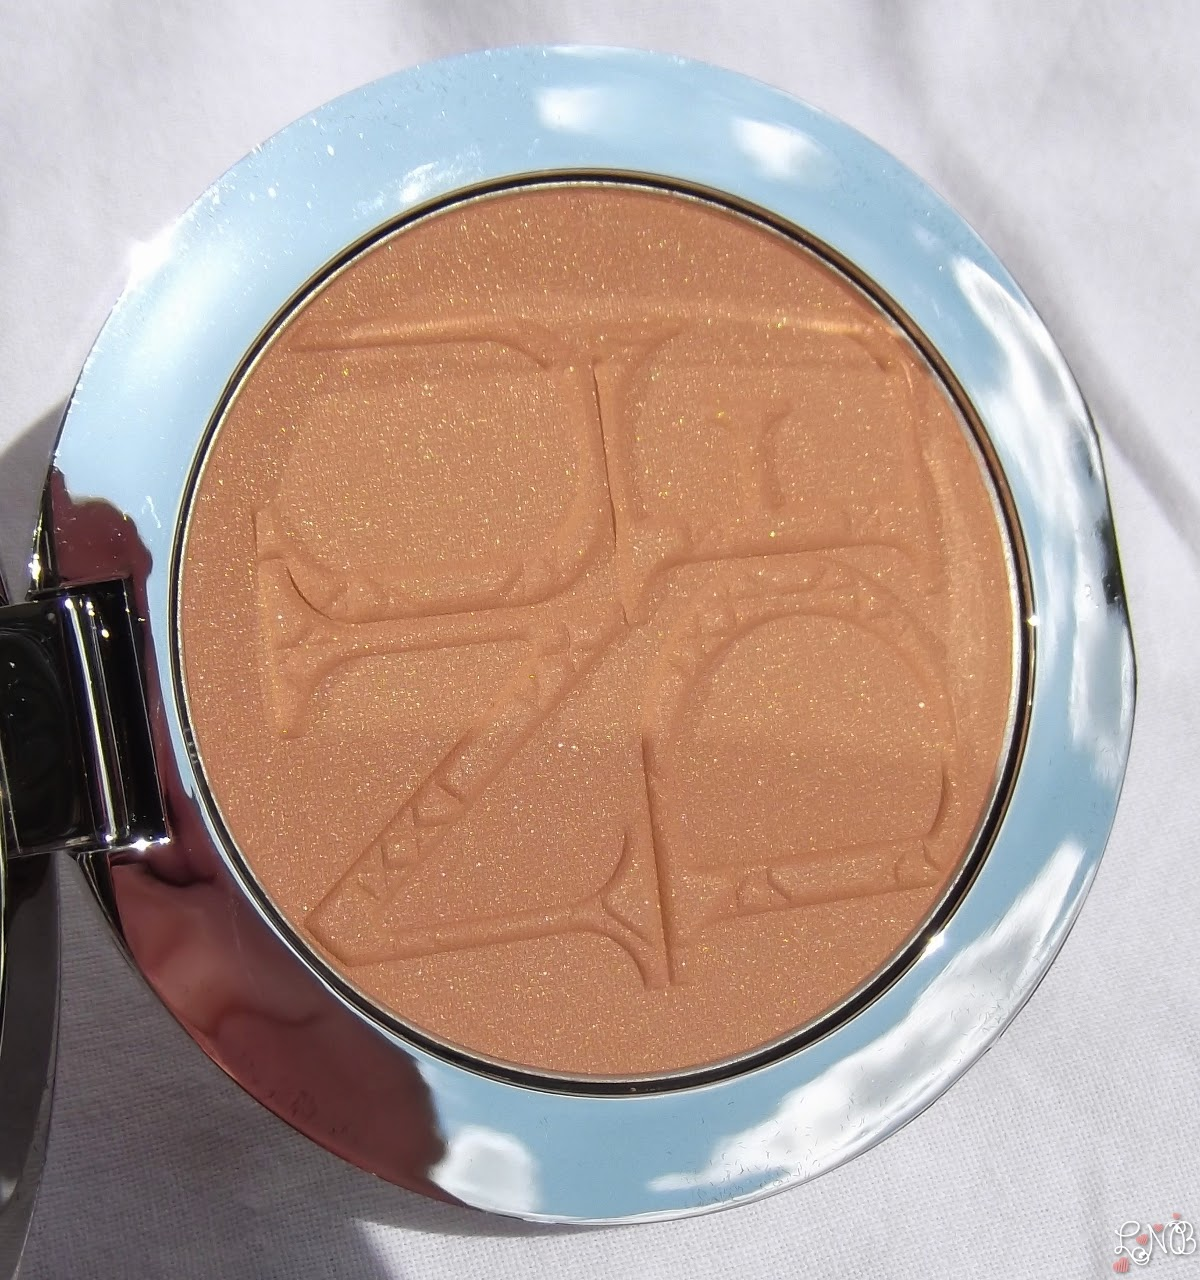 DIOR  Diorskin Nude Tan - Nude Glow Sun Powder - 001 Miel/Honey , Irisés visibles selon l'angle et la luminosité